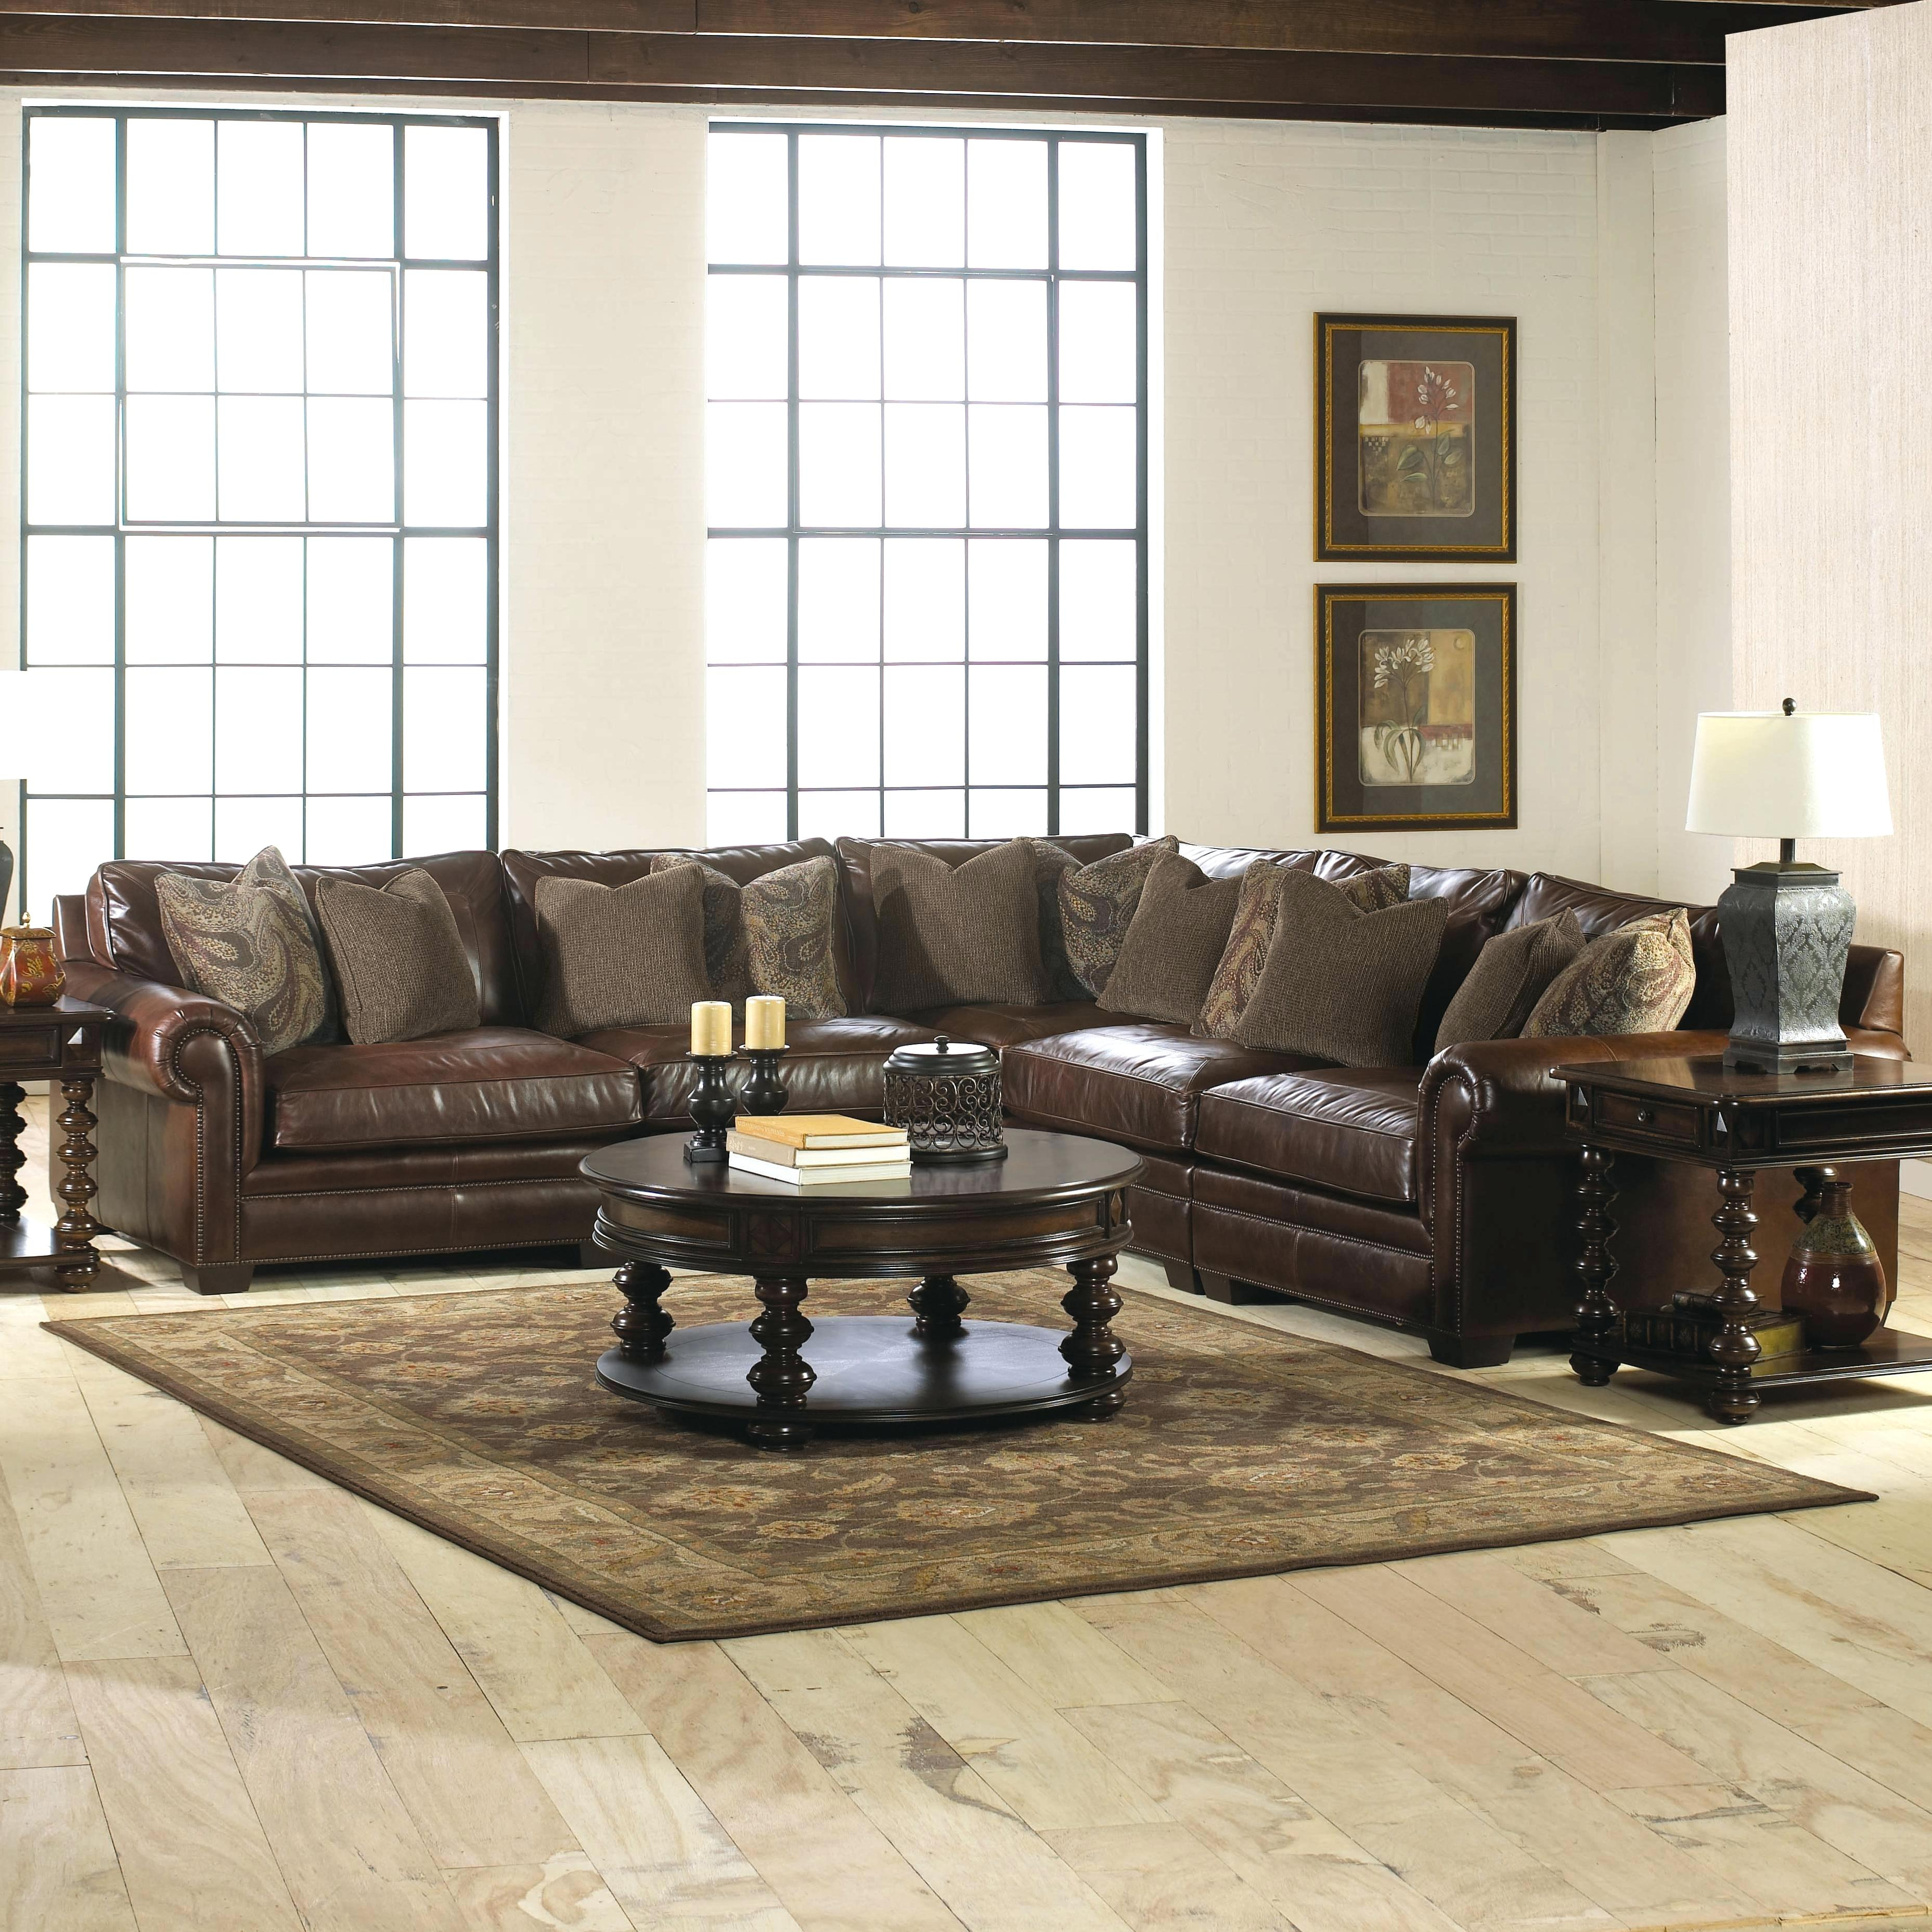 Havertys Return Policy Chairs Furniture Reviews Furniture with regard to 10 Awesome Ideas How to Upgrade Havertys Living Room Sets